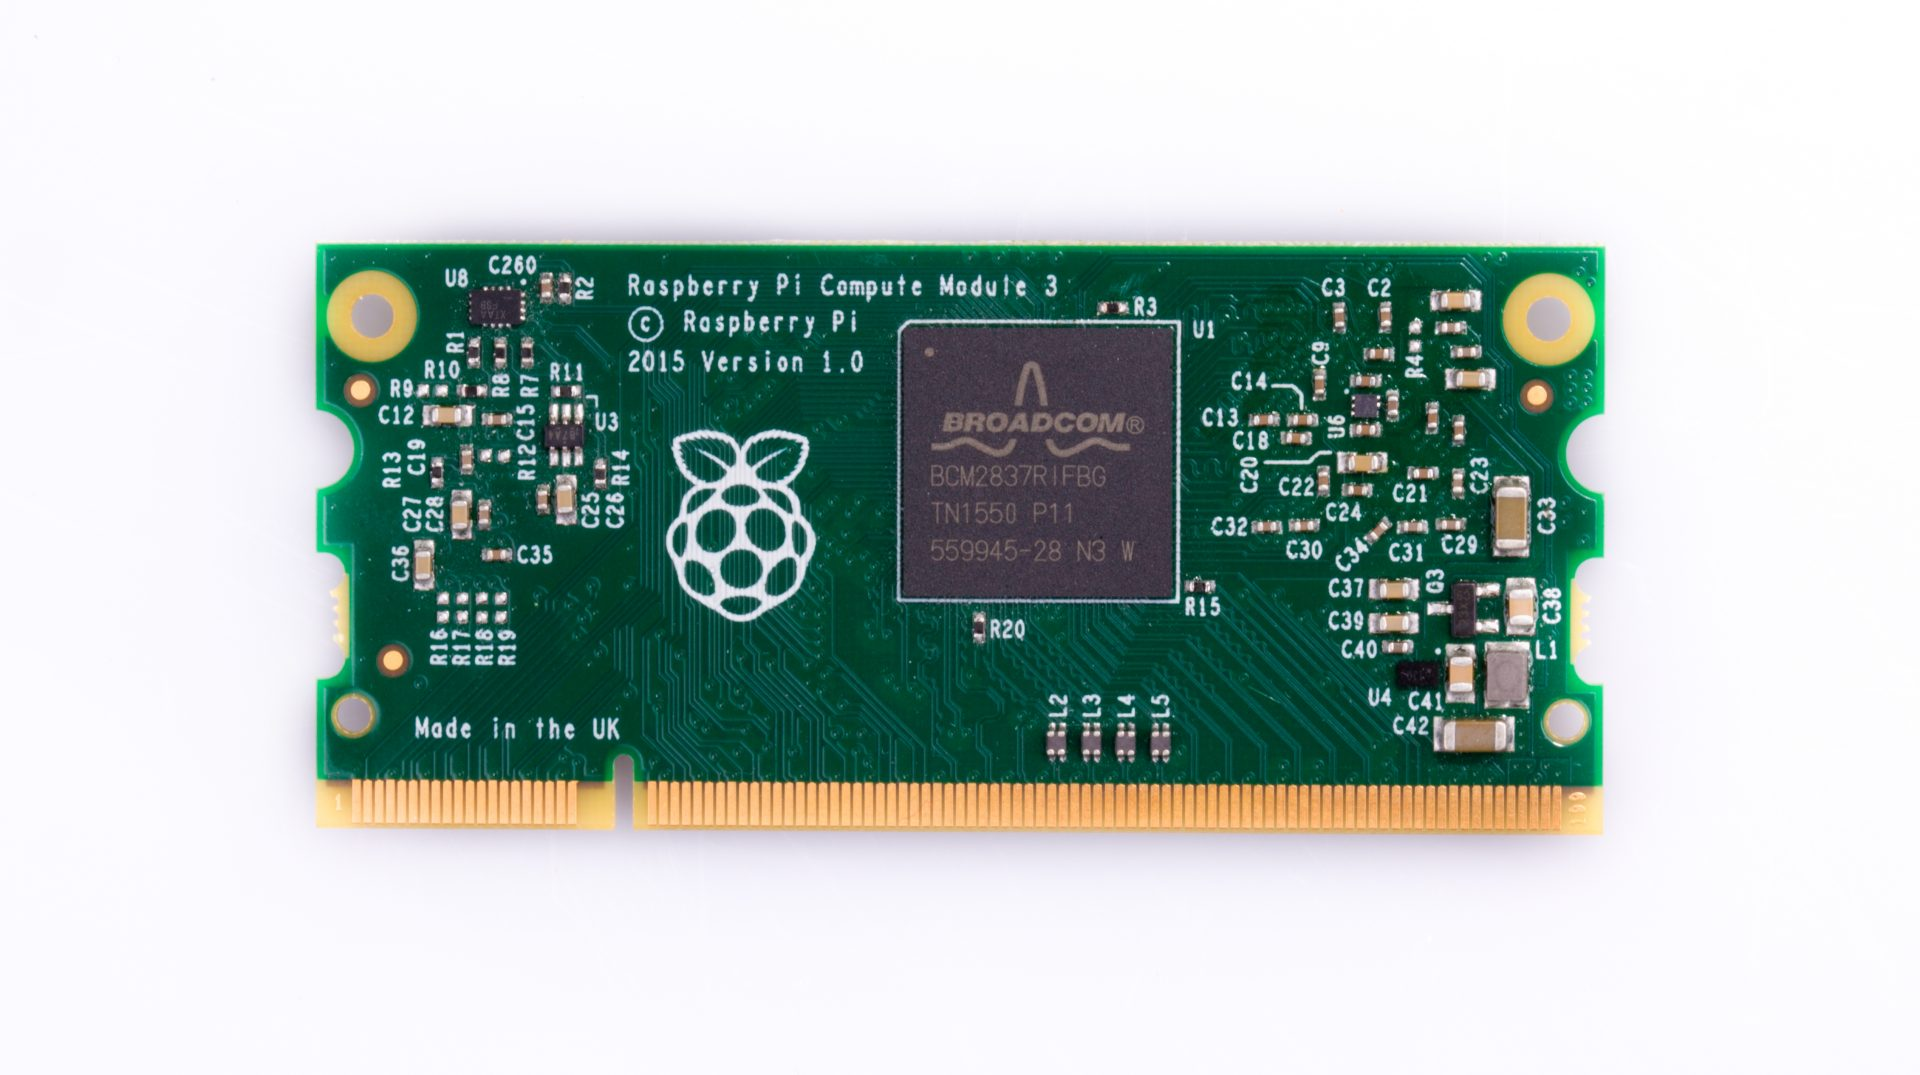 CM3-PANEL – A Panel PC based on the Raspberry Compute Module 3